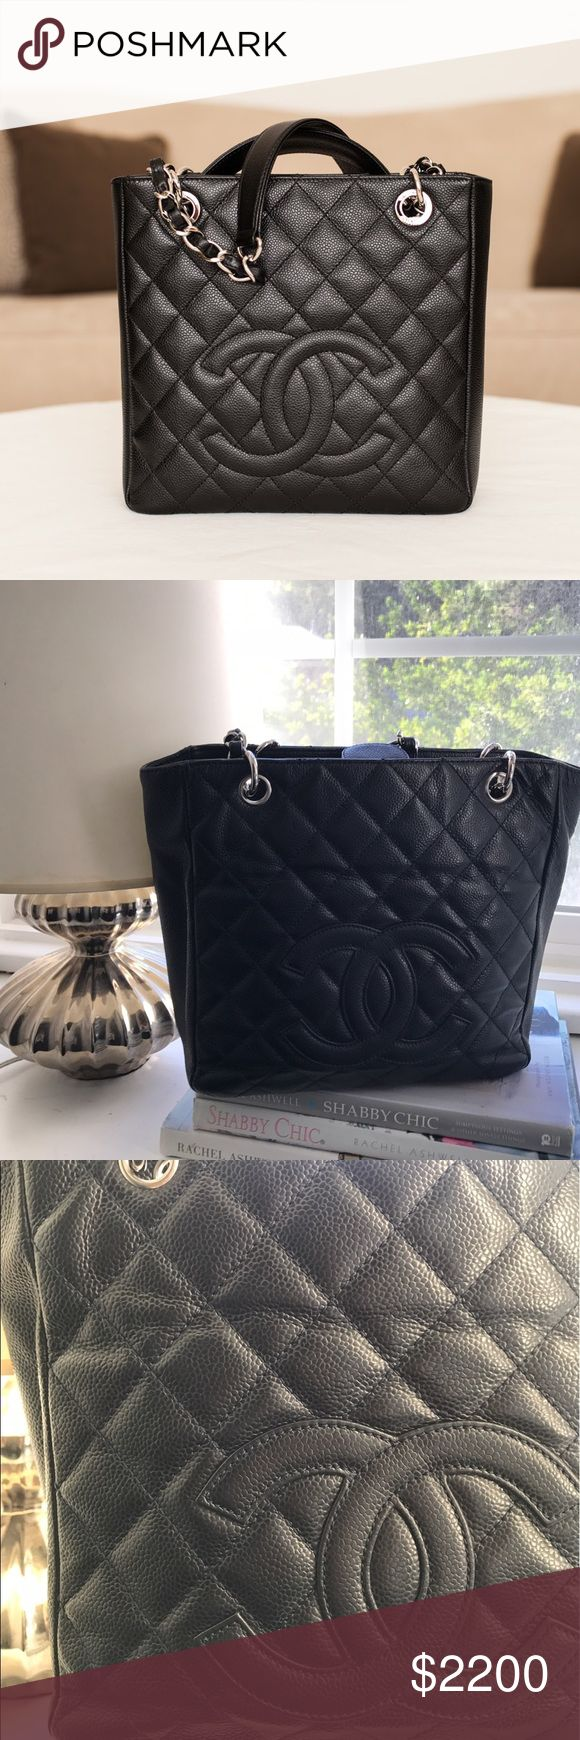 Chanel Caviar Petite Tote Selling this gorgeous Chanel Tote in beautiful shape!  Color: Black with Silver Hardware.  Comes in Chanel duster bag.  100% AUTHENTIC.  Purchased from Chanel Beverly Hills store. CHANEL Bags Totes